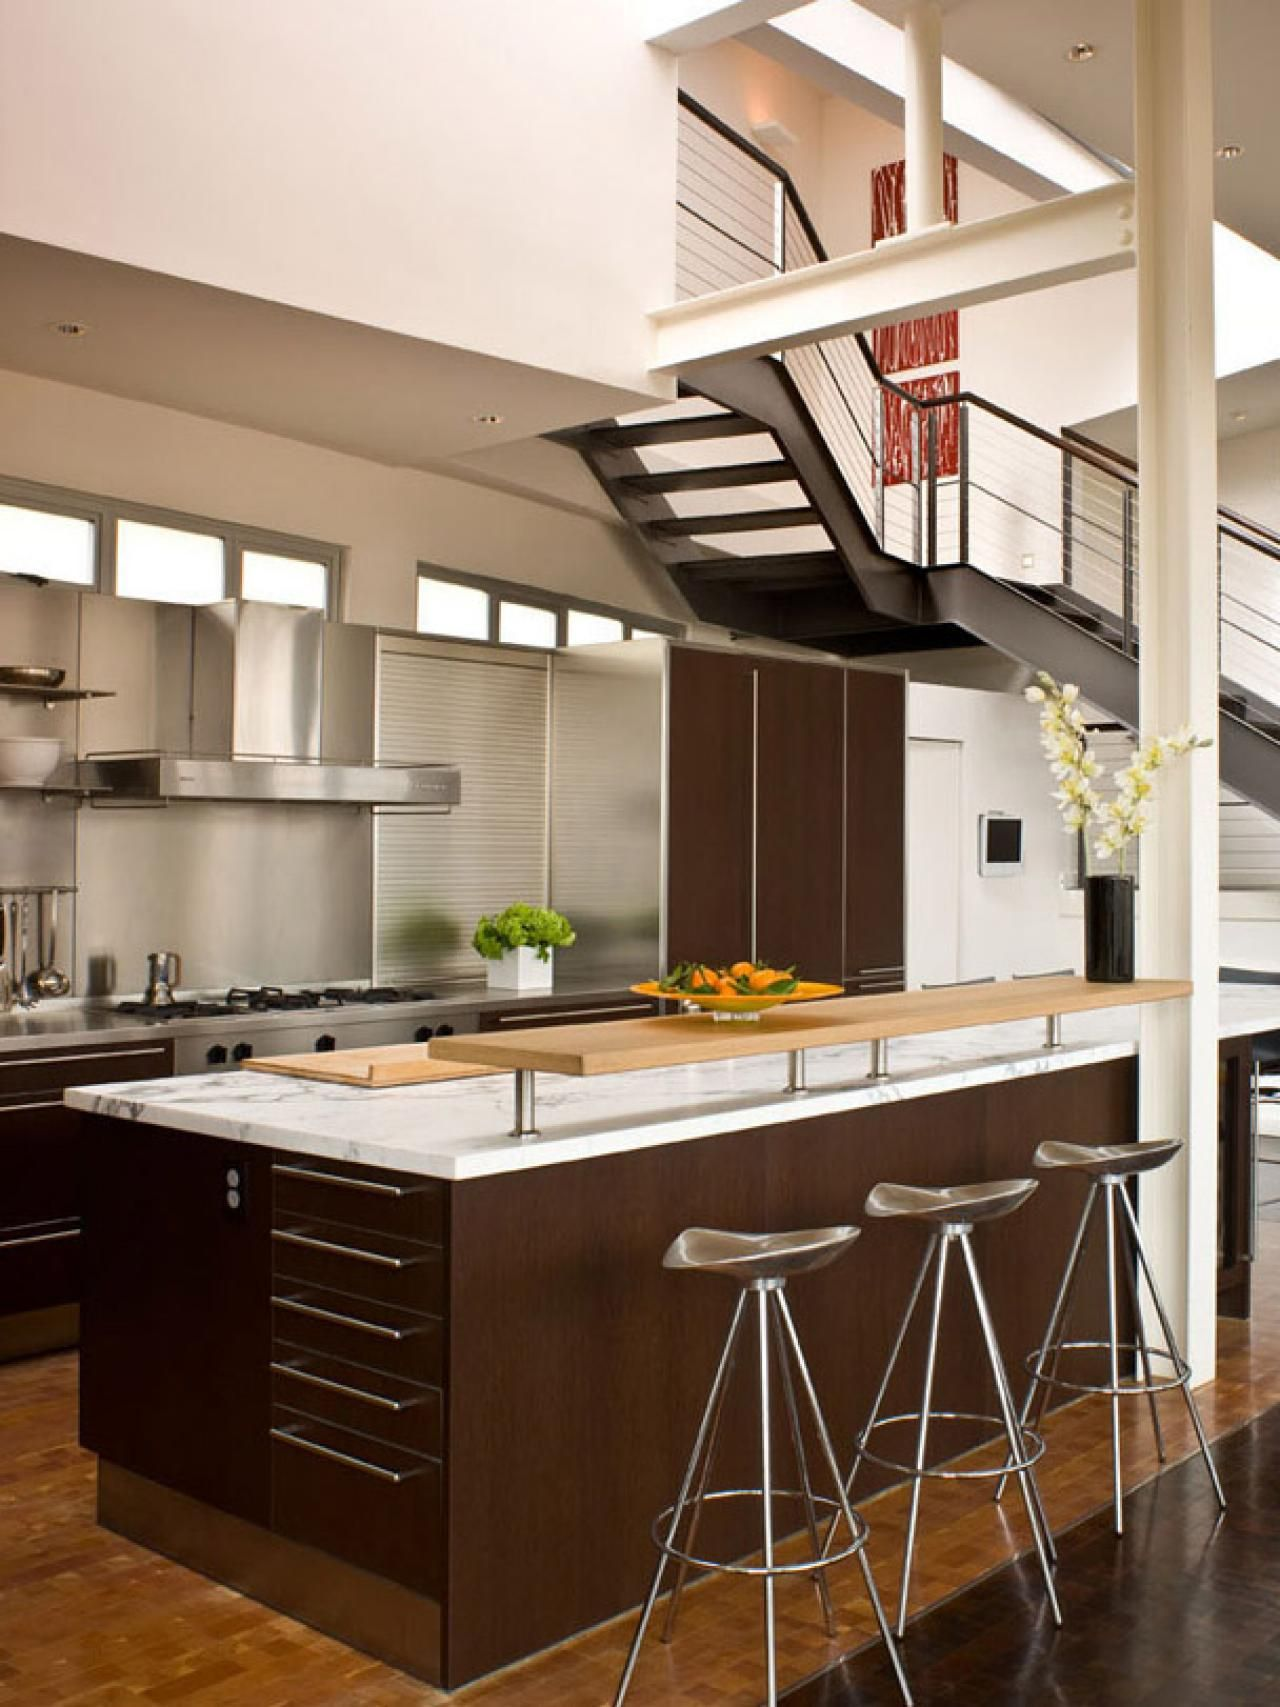 Pictures Of Small Kitchen Design Ideas From Small Modern